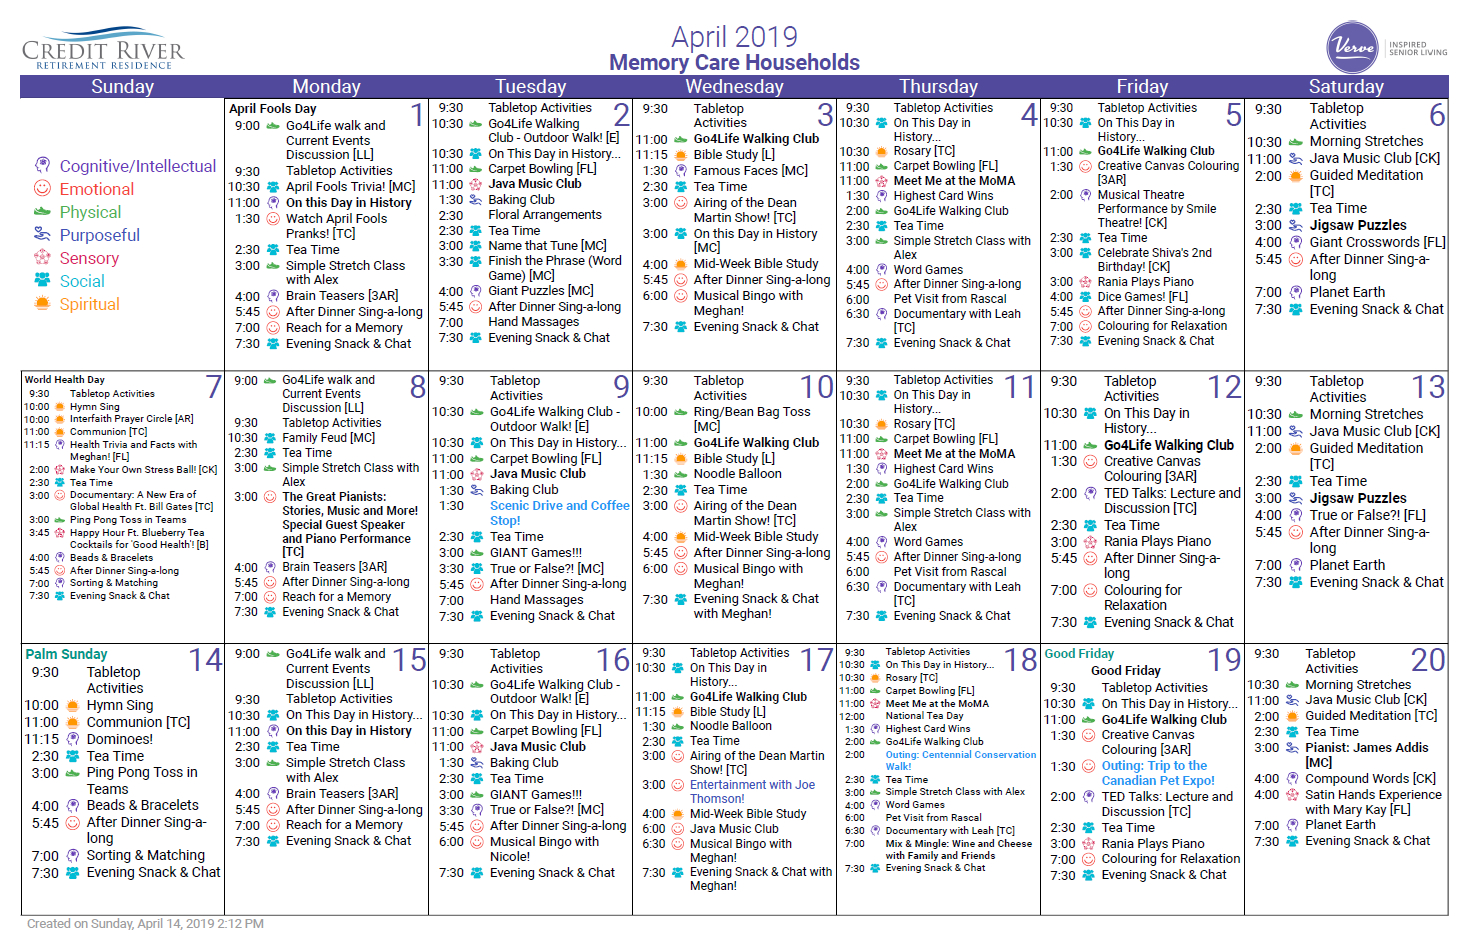 Credit River Retirement Memory Care Residence April 2019 5 Year Retirement Calendar